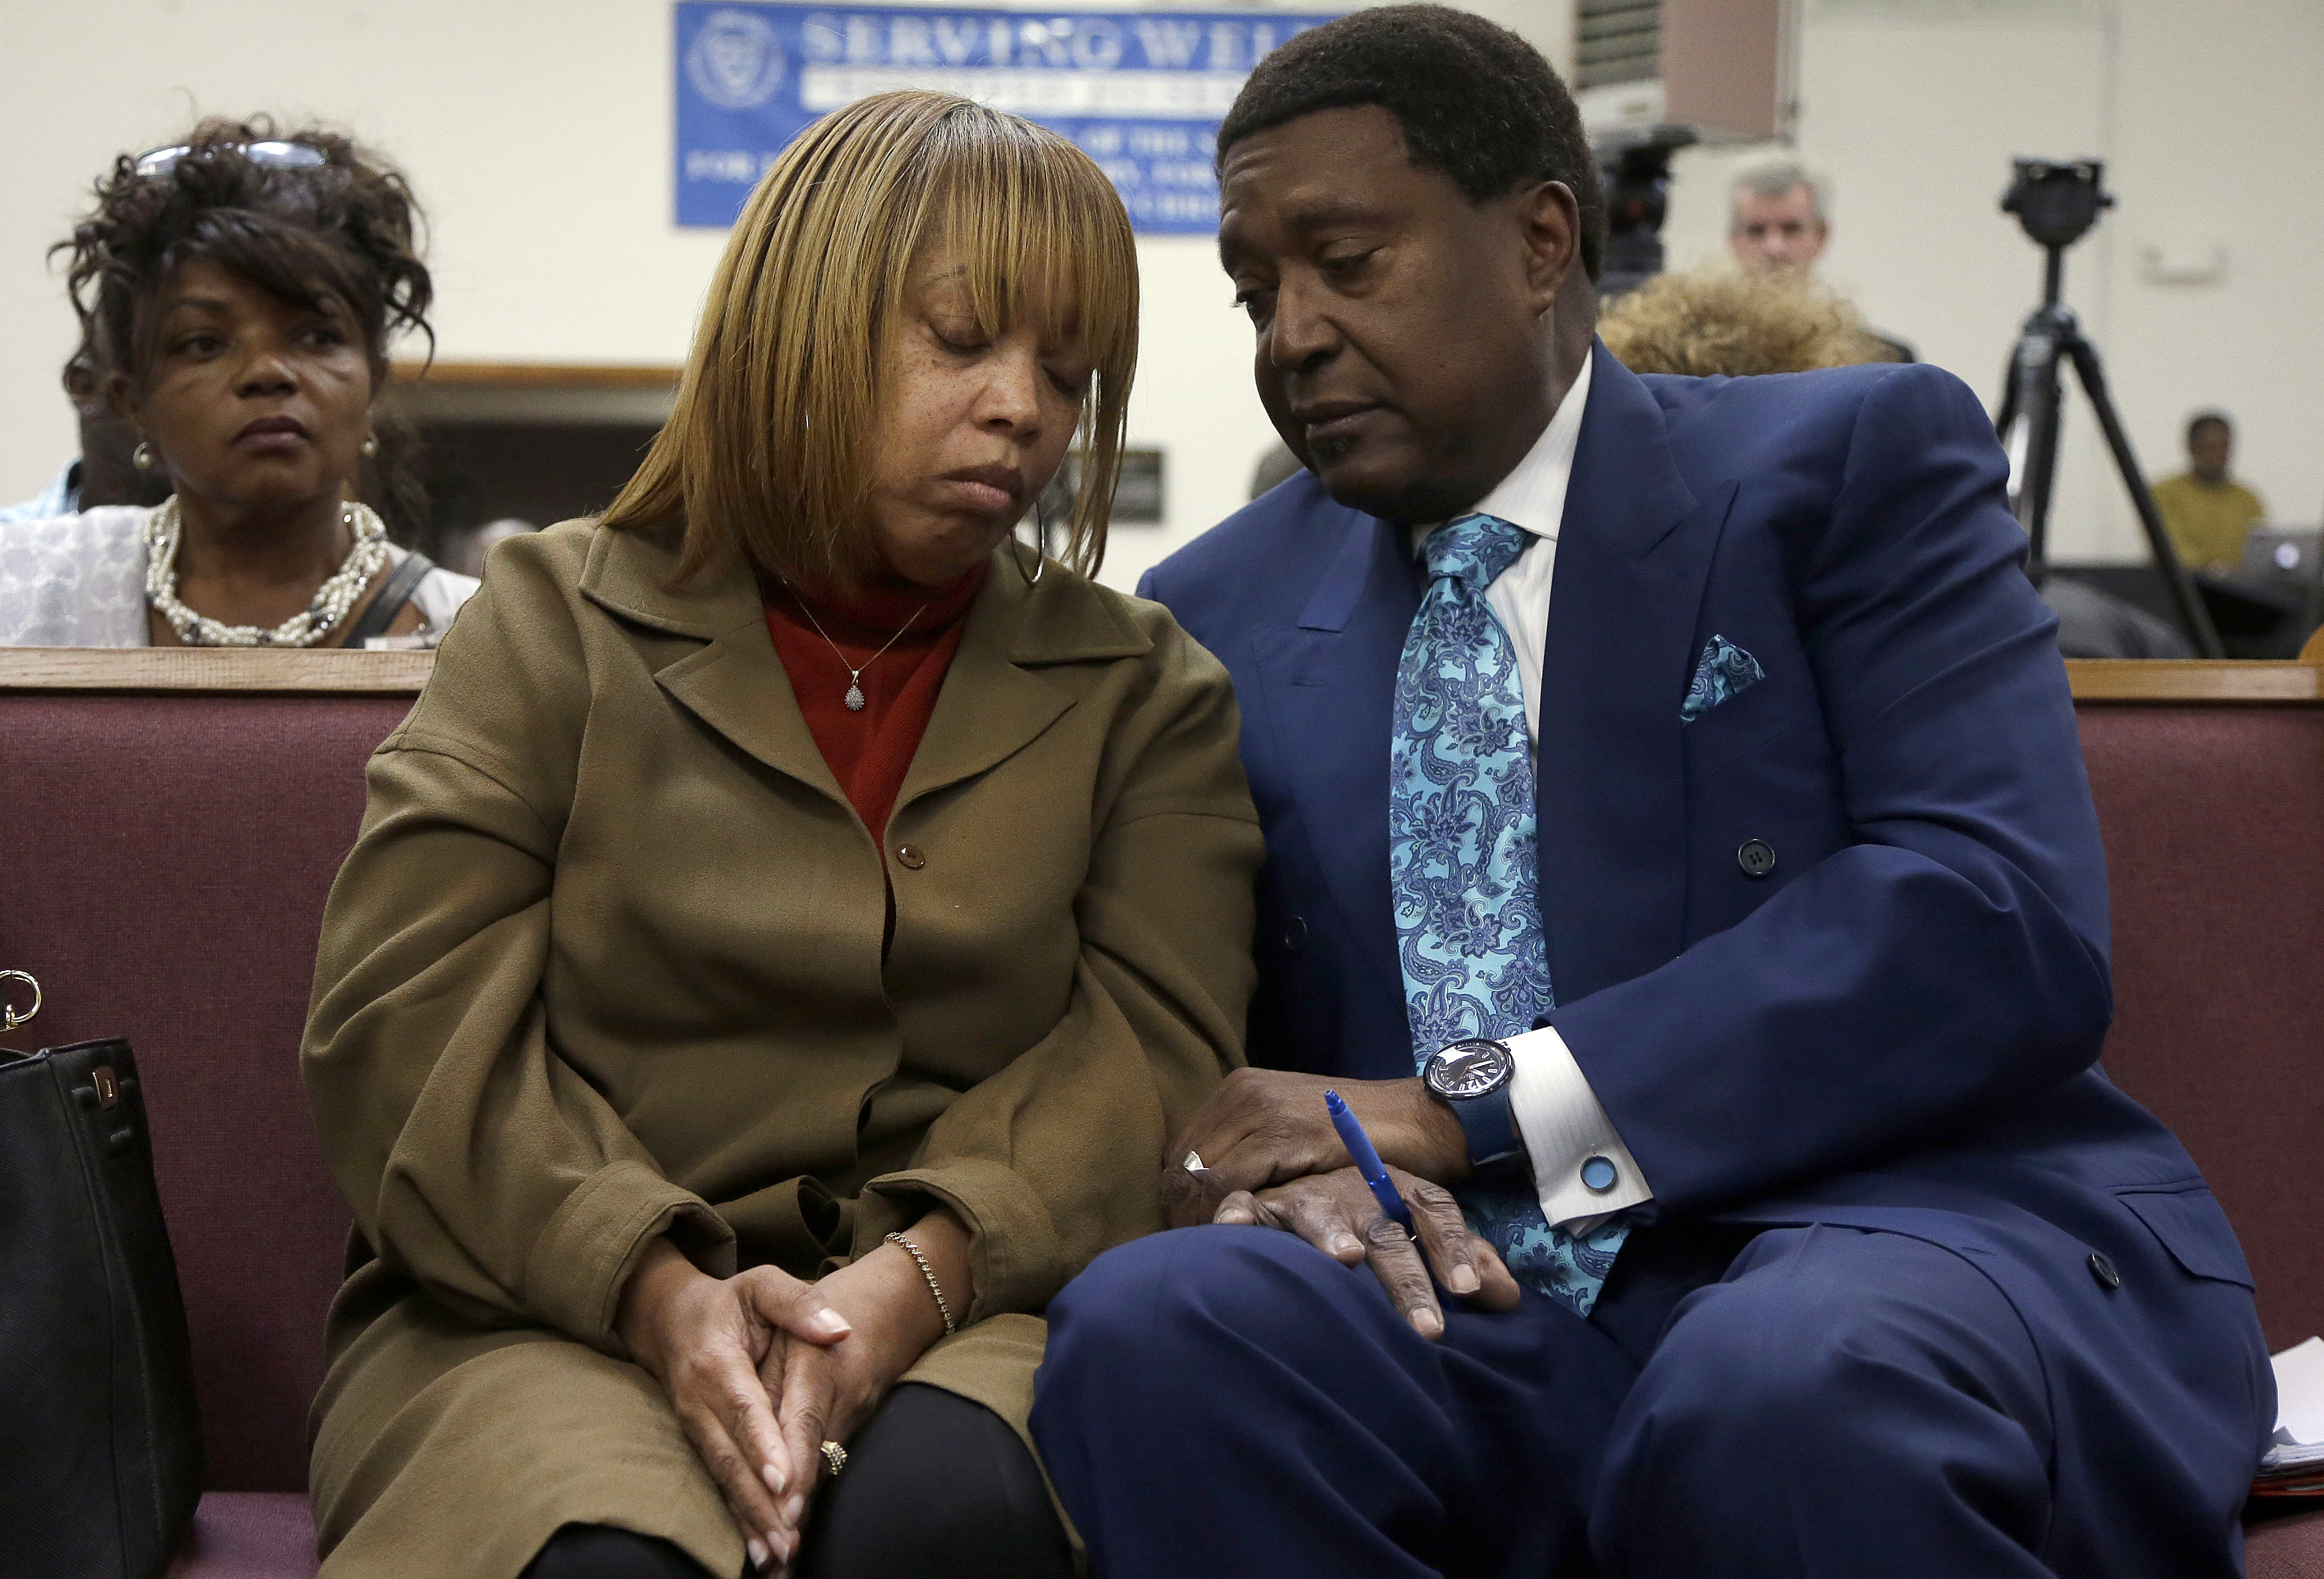 Attorney John Burris, right, talks with Gwendolyn Woods, the mother of Mario Woods, the man killed by San Francisco police after they say he appeared to raise a knife and approach an officer, San Francisco, Jan. 18, 2016